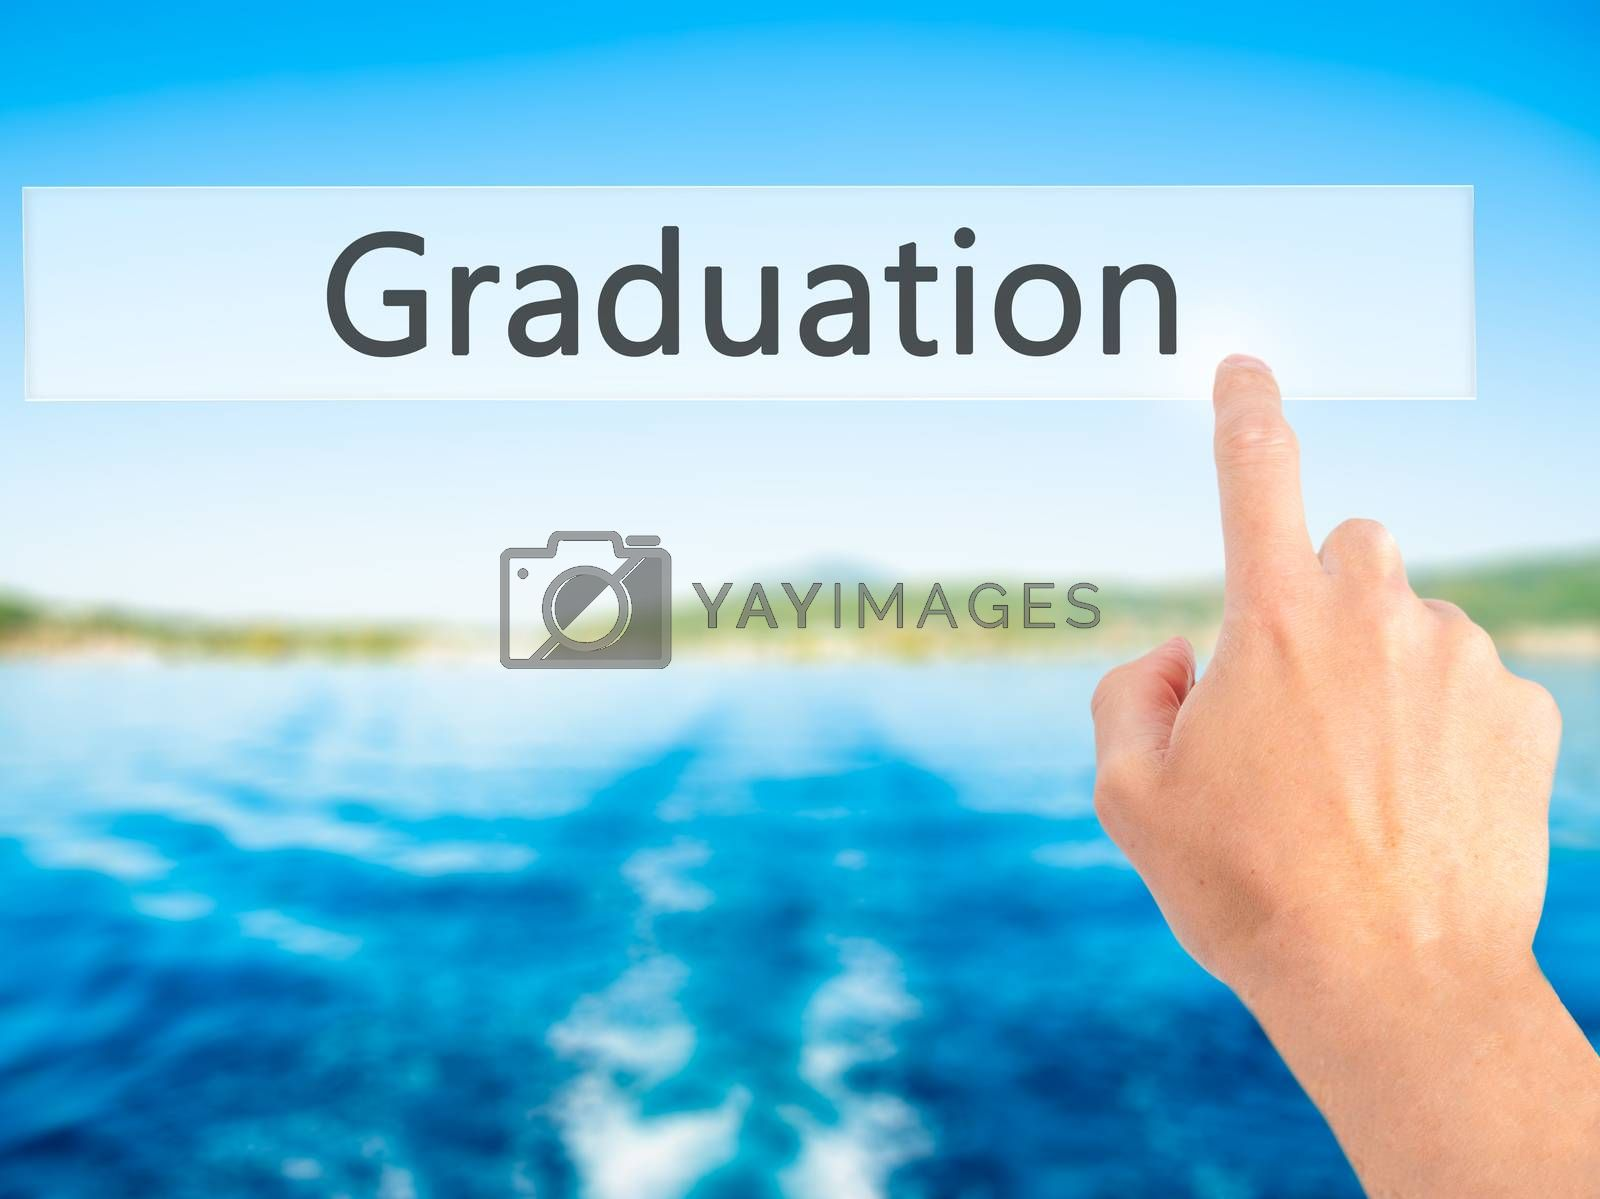 Graduation - Hand pressing a button on blurred background concep by jackald